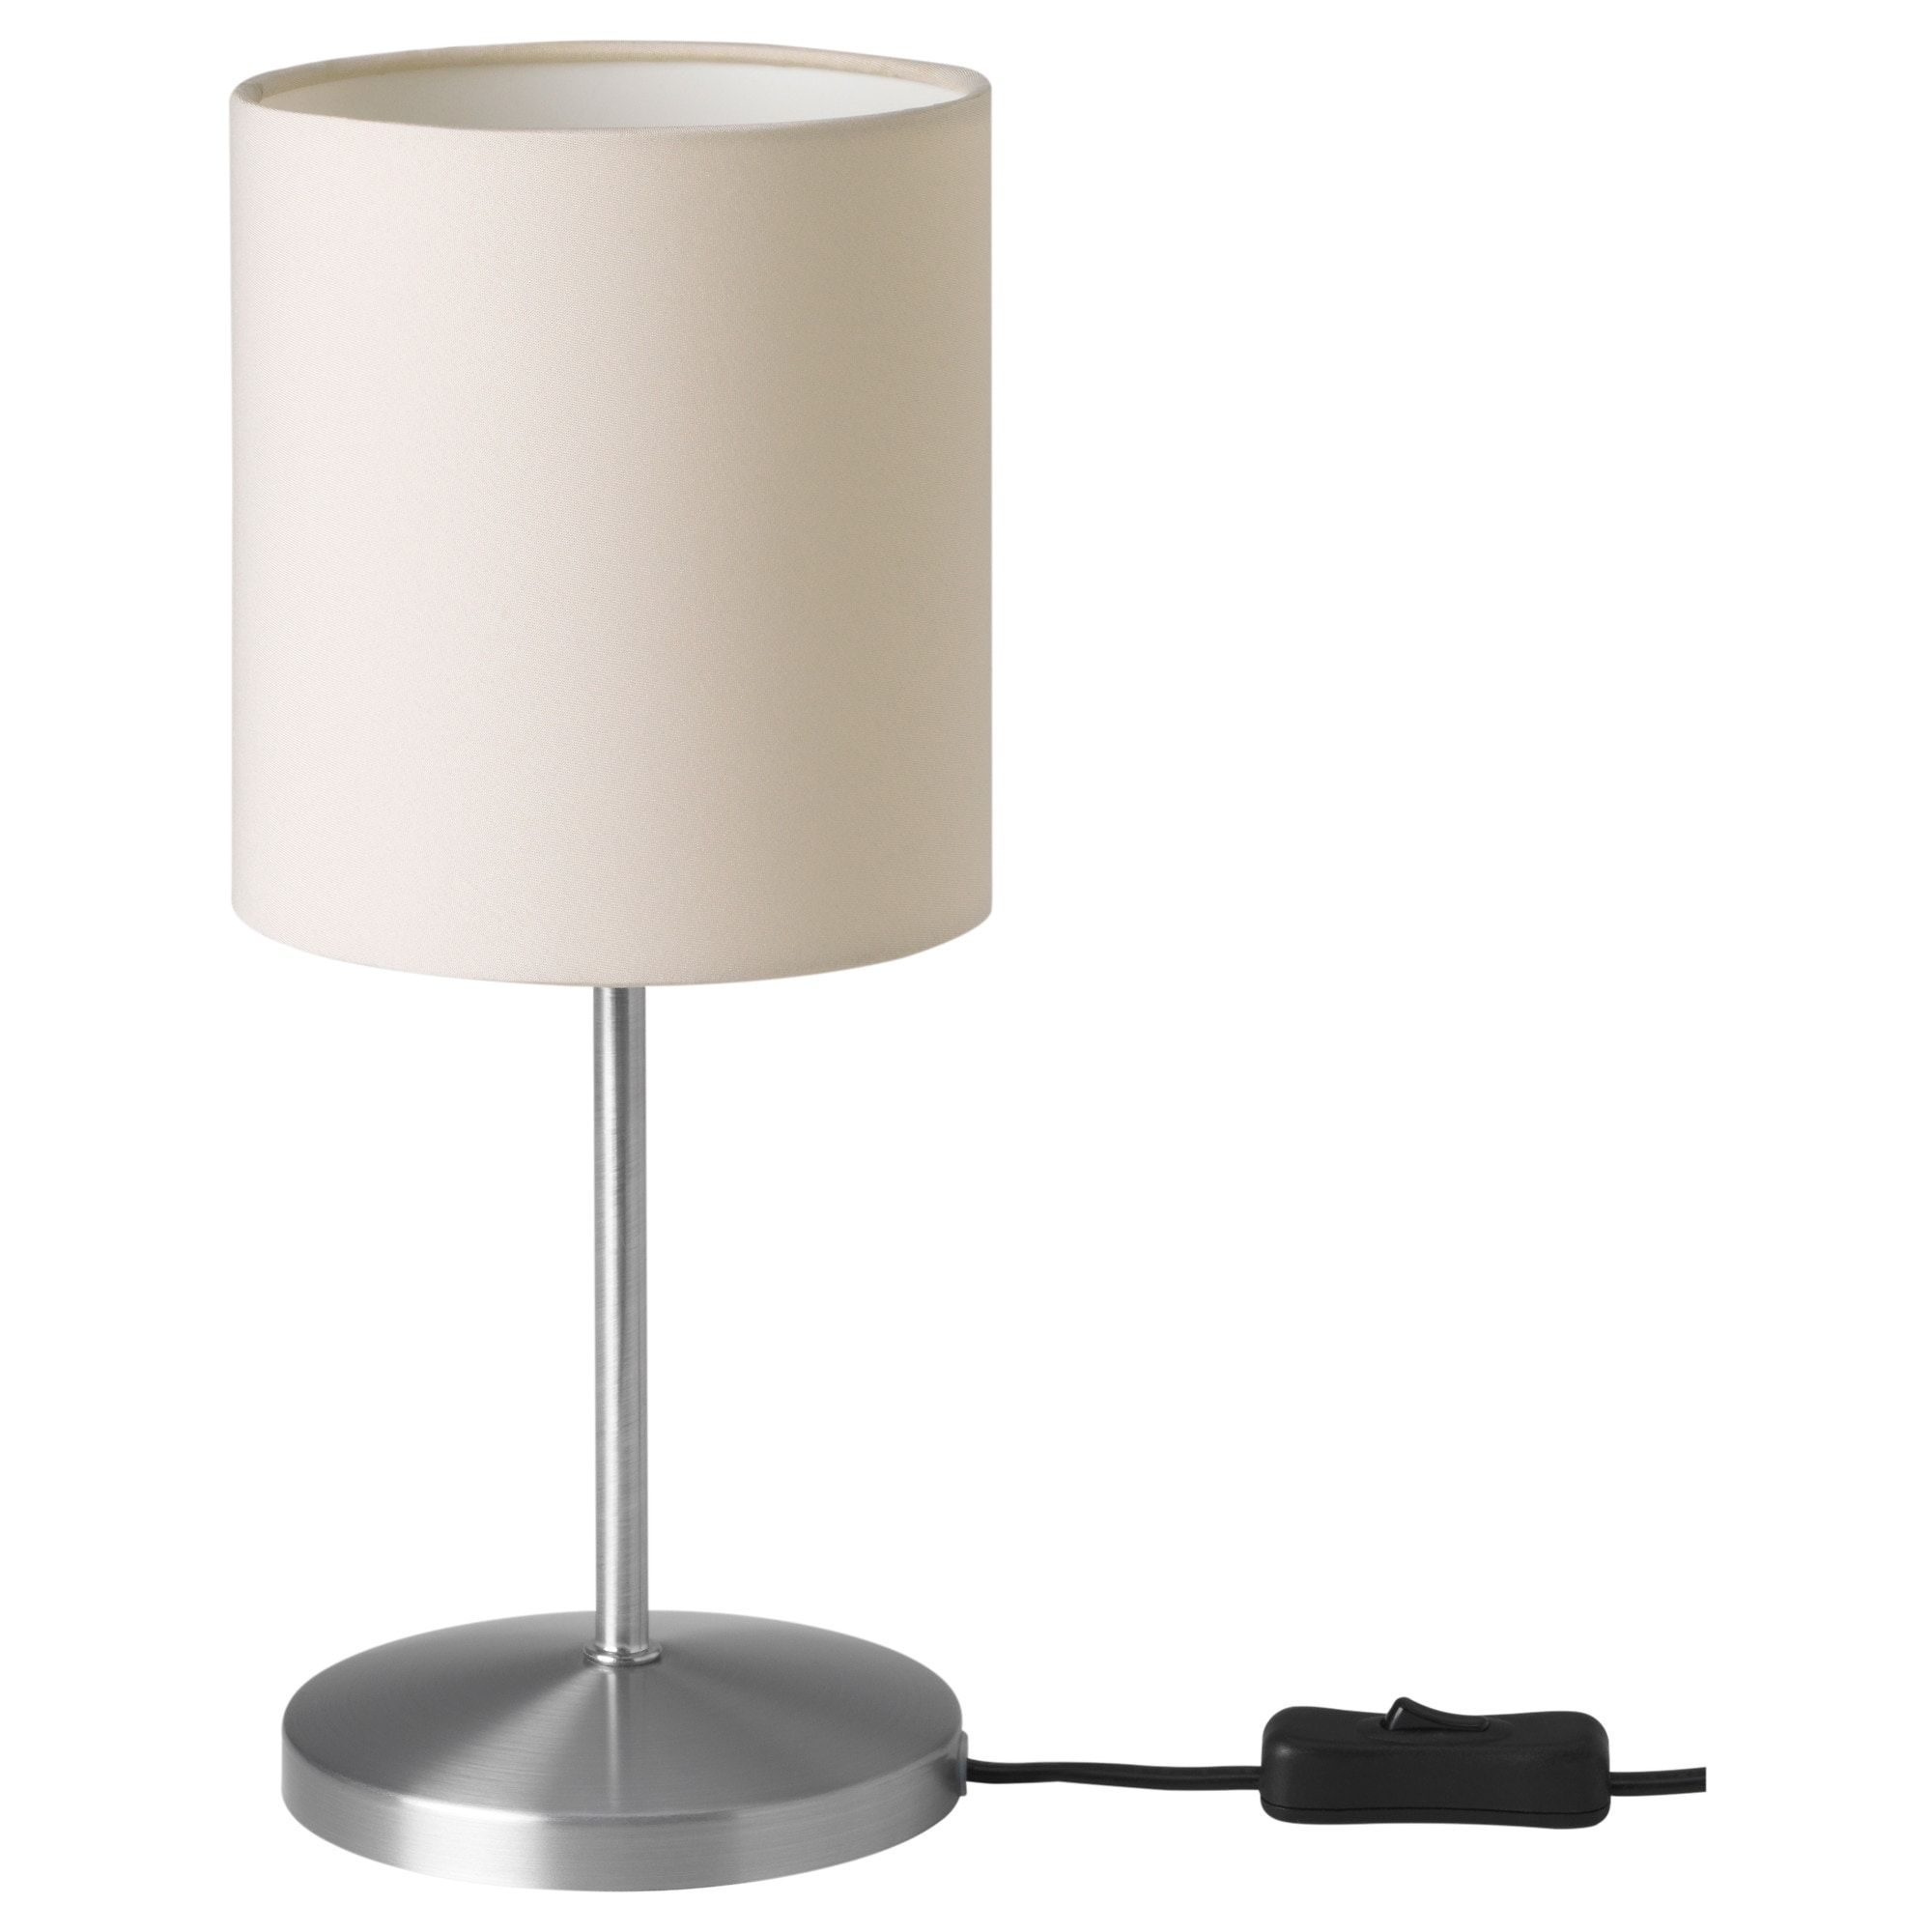 Furniture & Home Furnishings Find Your Inspiration | Lamp